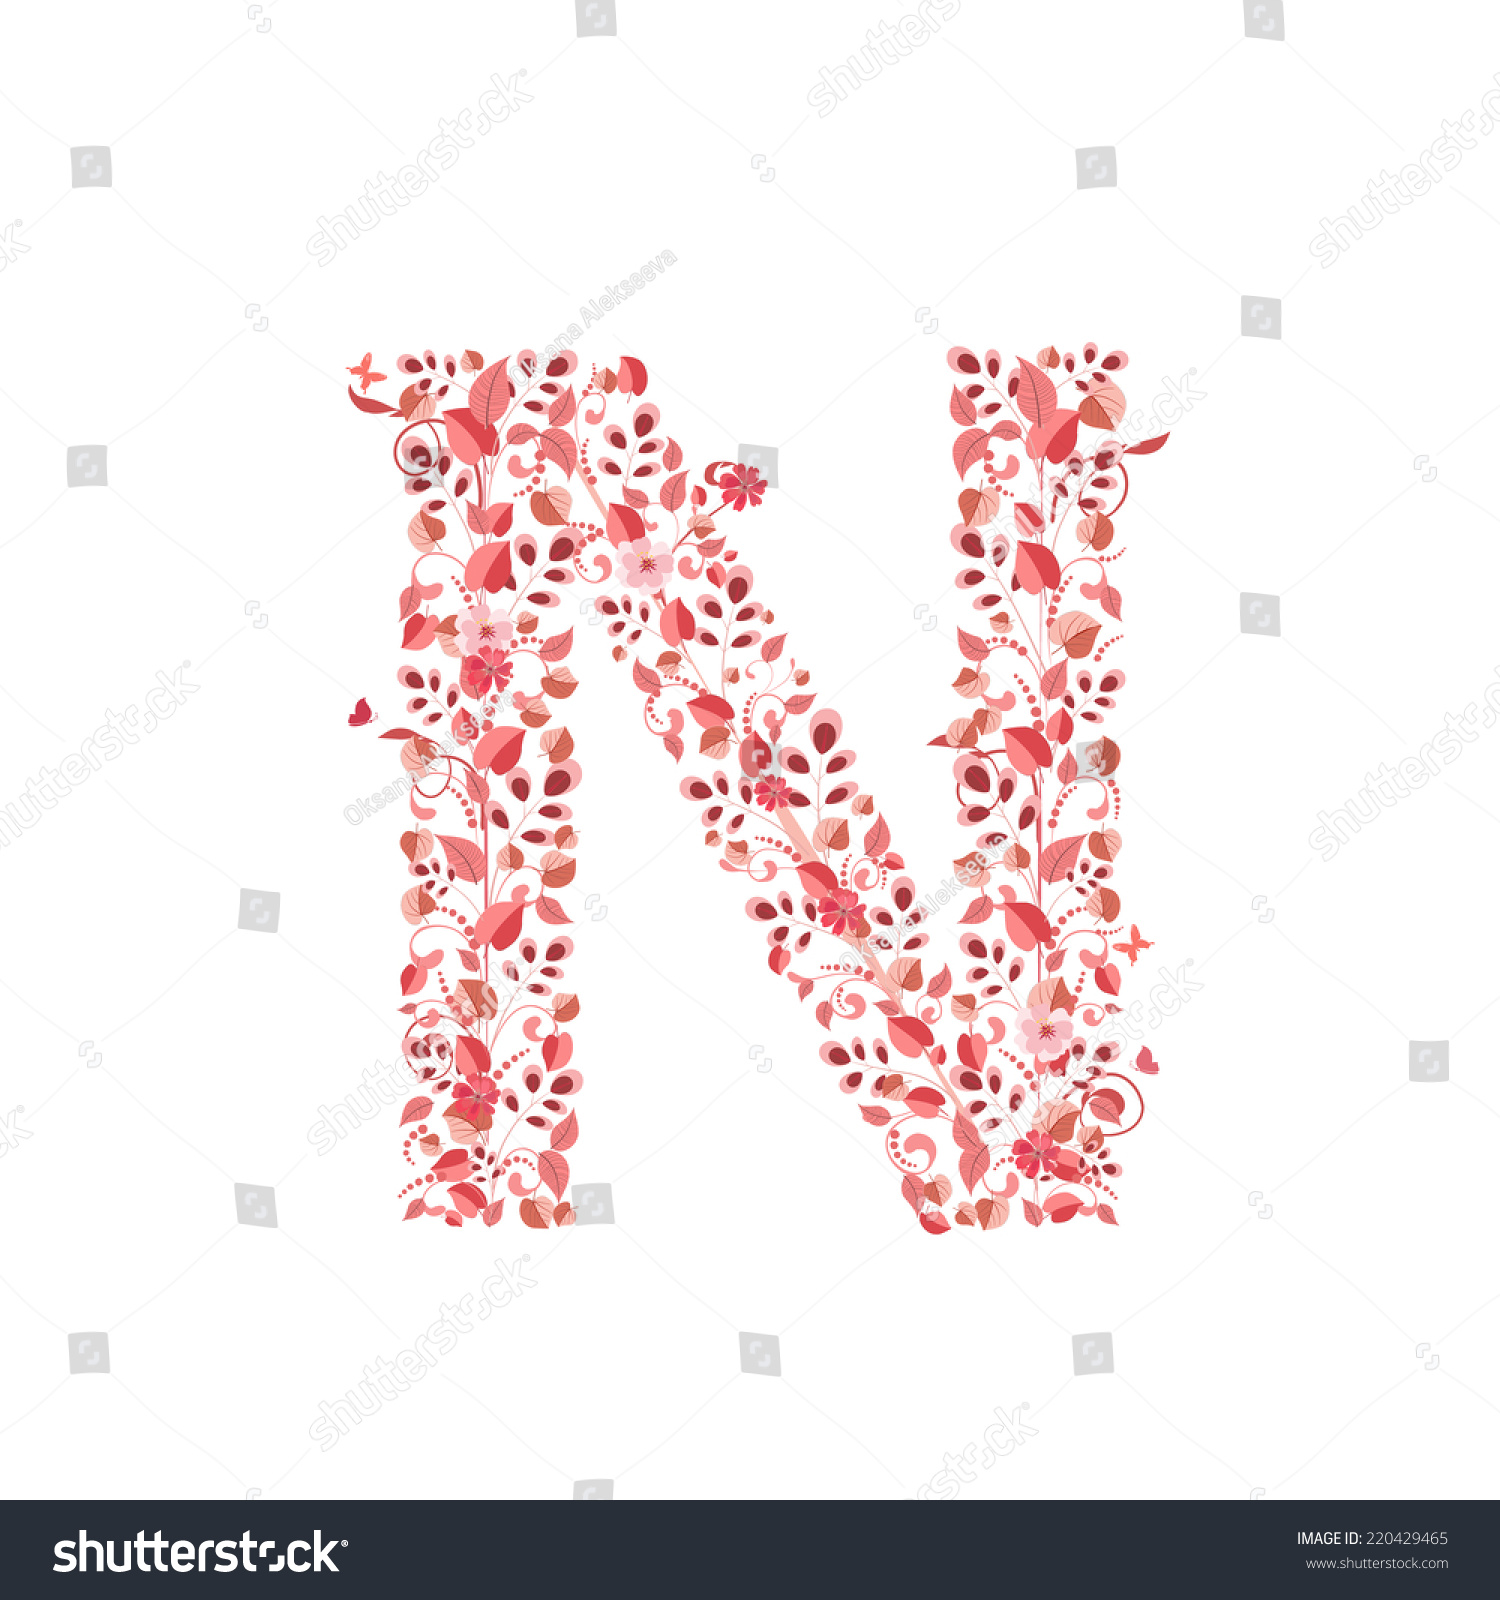 Romantic Floral Letter N Stock Vector (Royalty Free) 220429465 ...